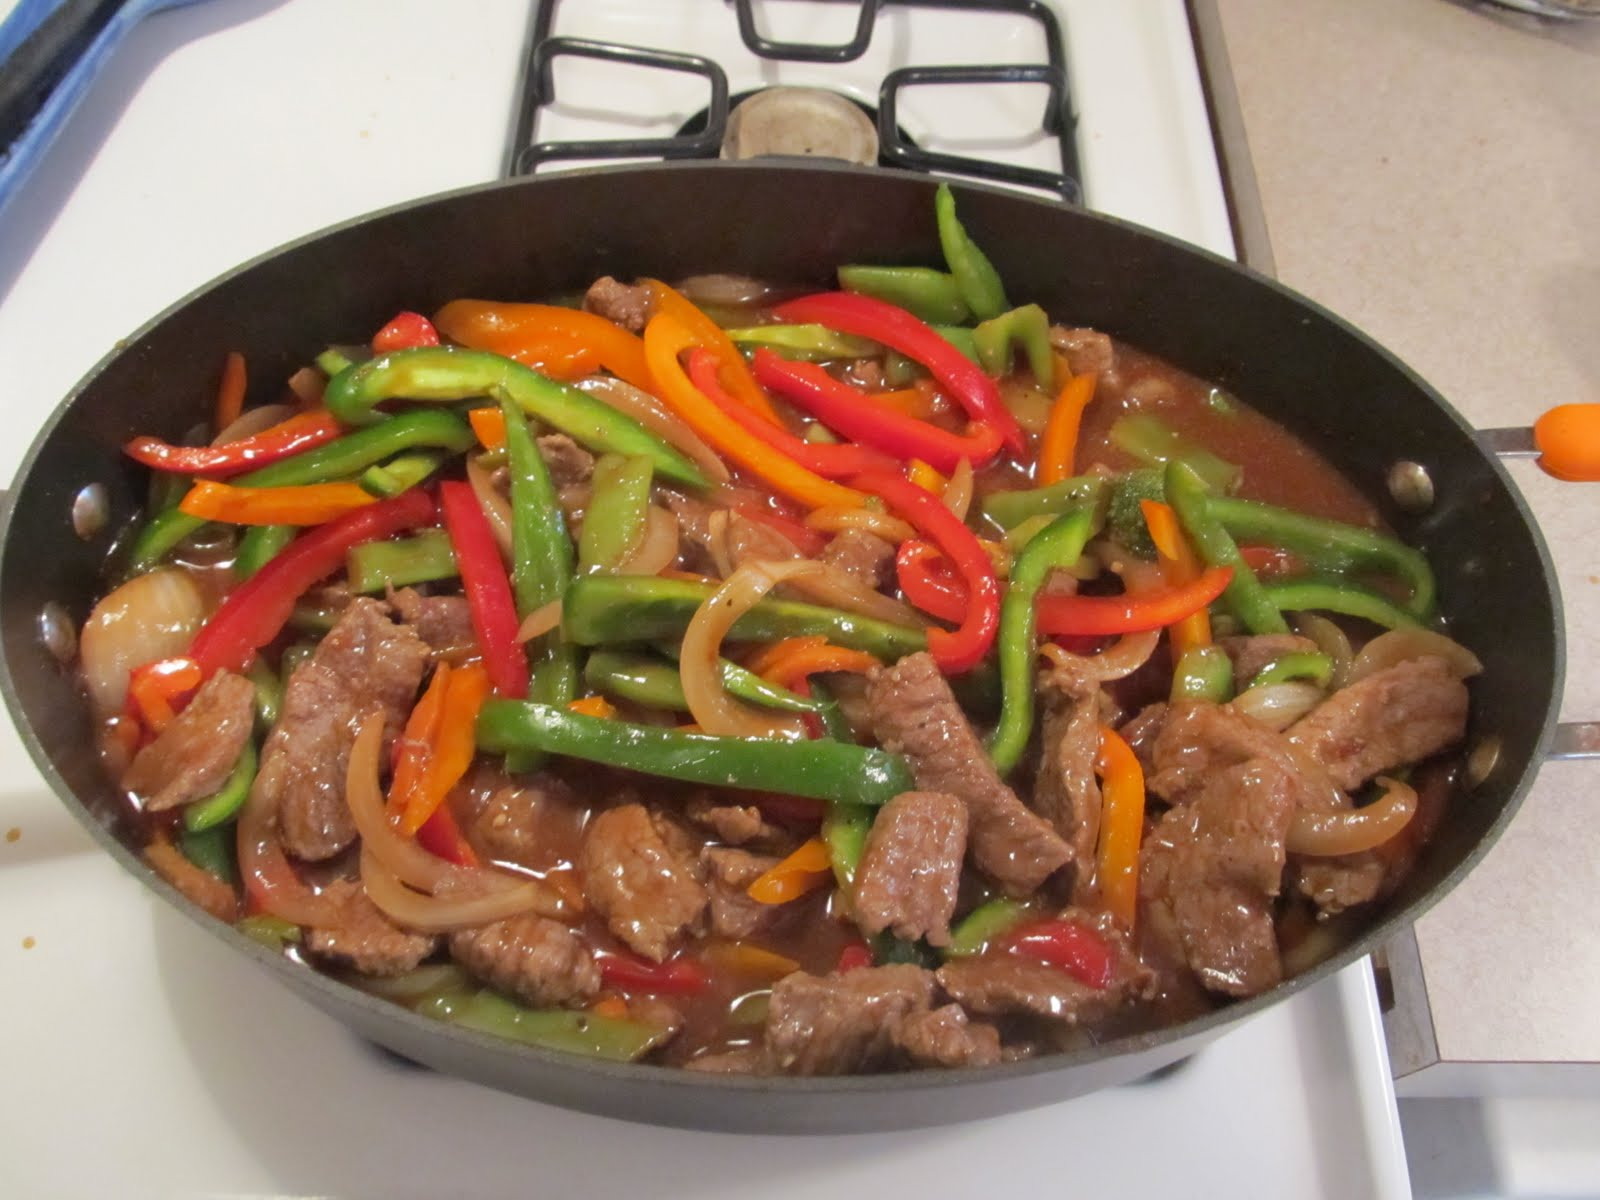 Divide the pepper steak mixture into three quart size containers and ...